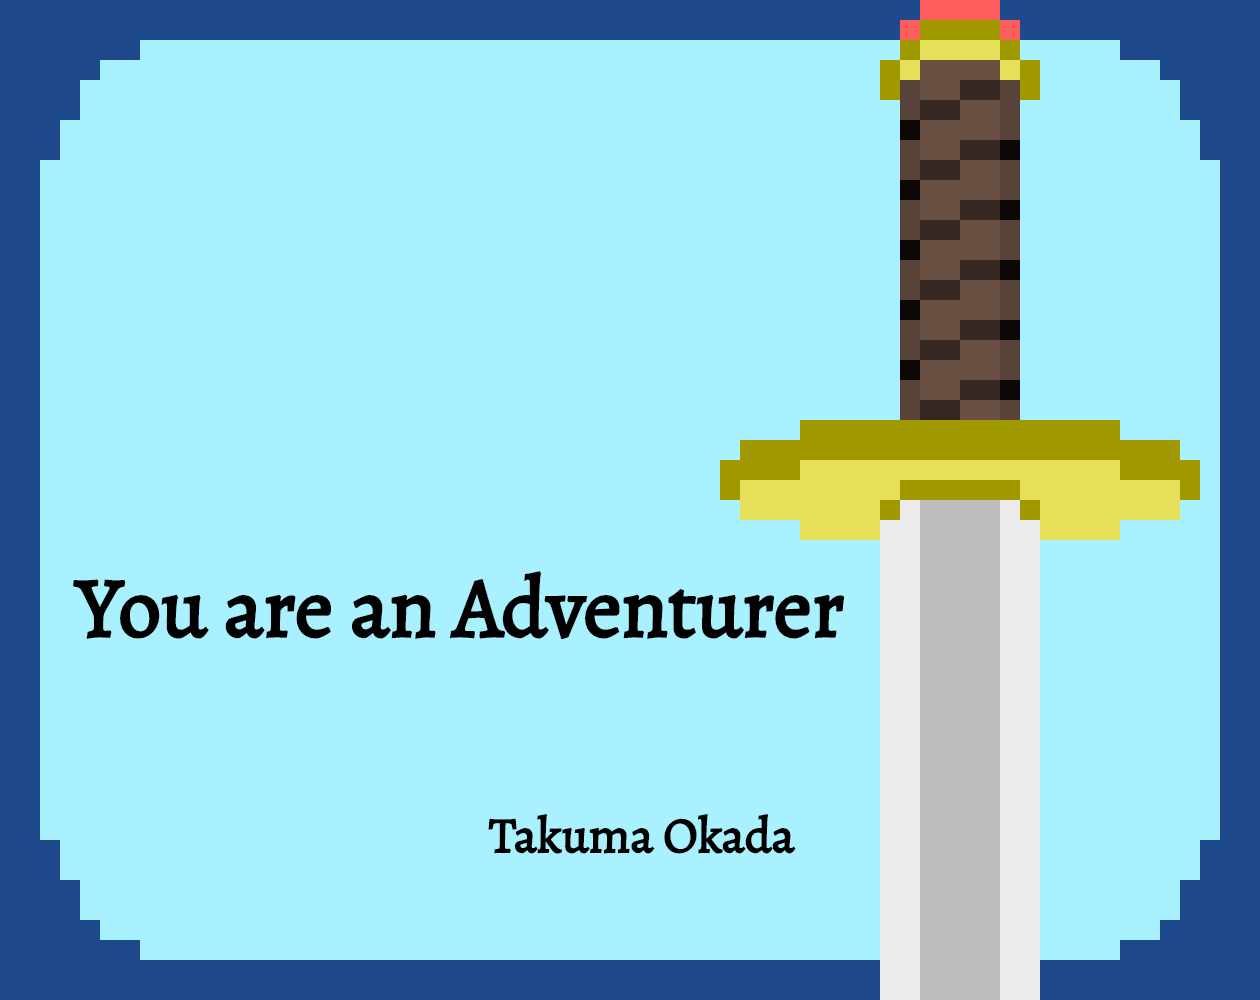 You are an Adventurer